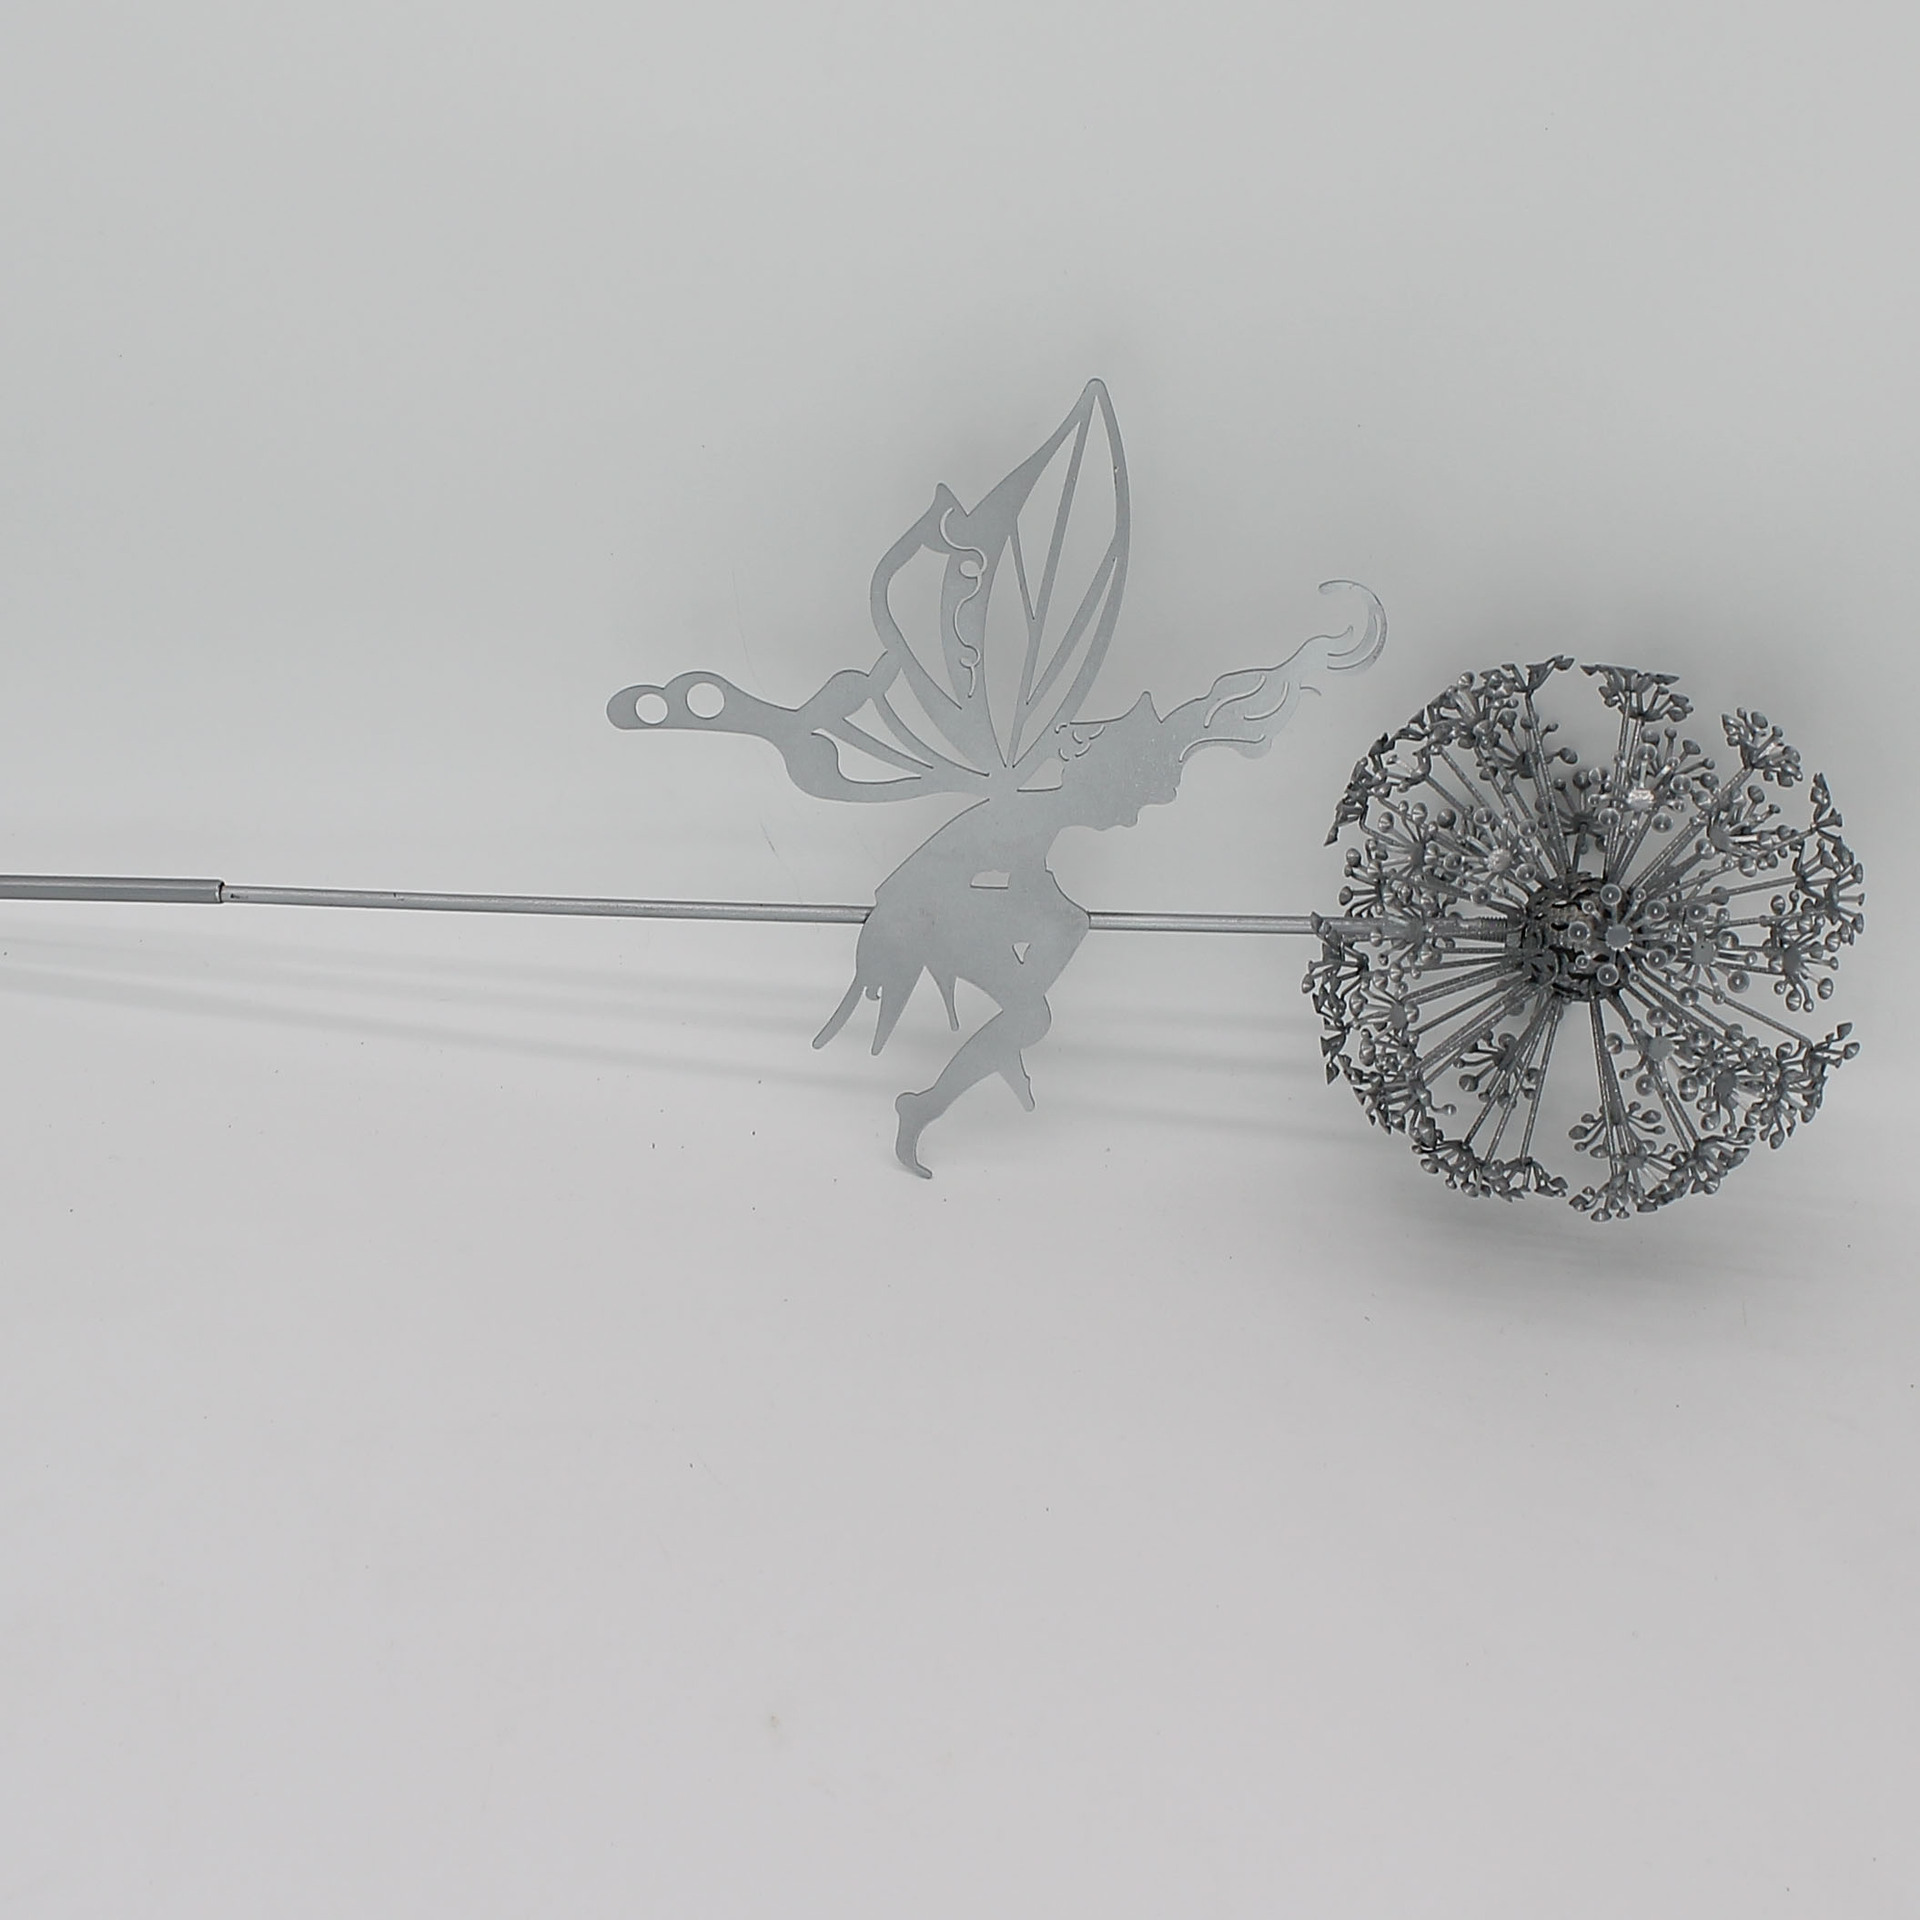 Solidified Dandelion with Fairy Decor for Lawn Ornaments